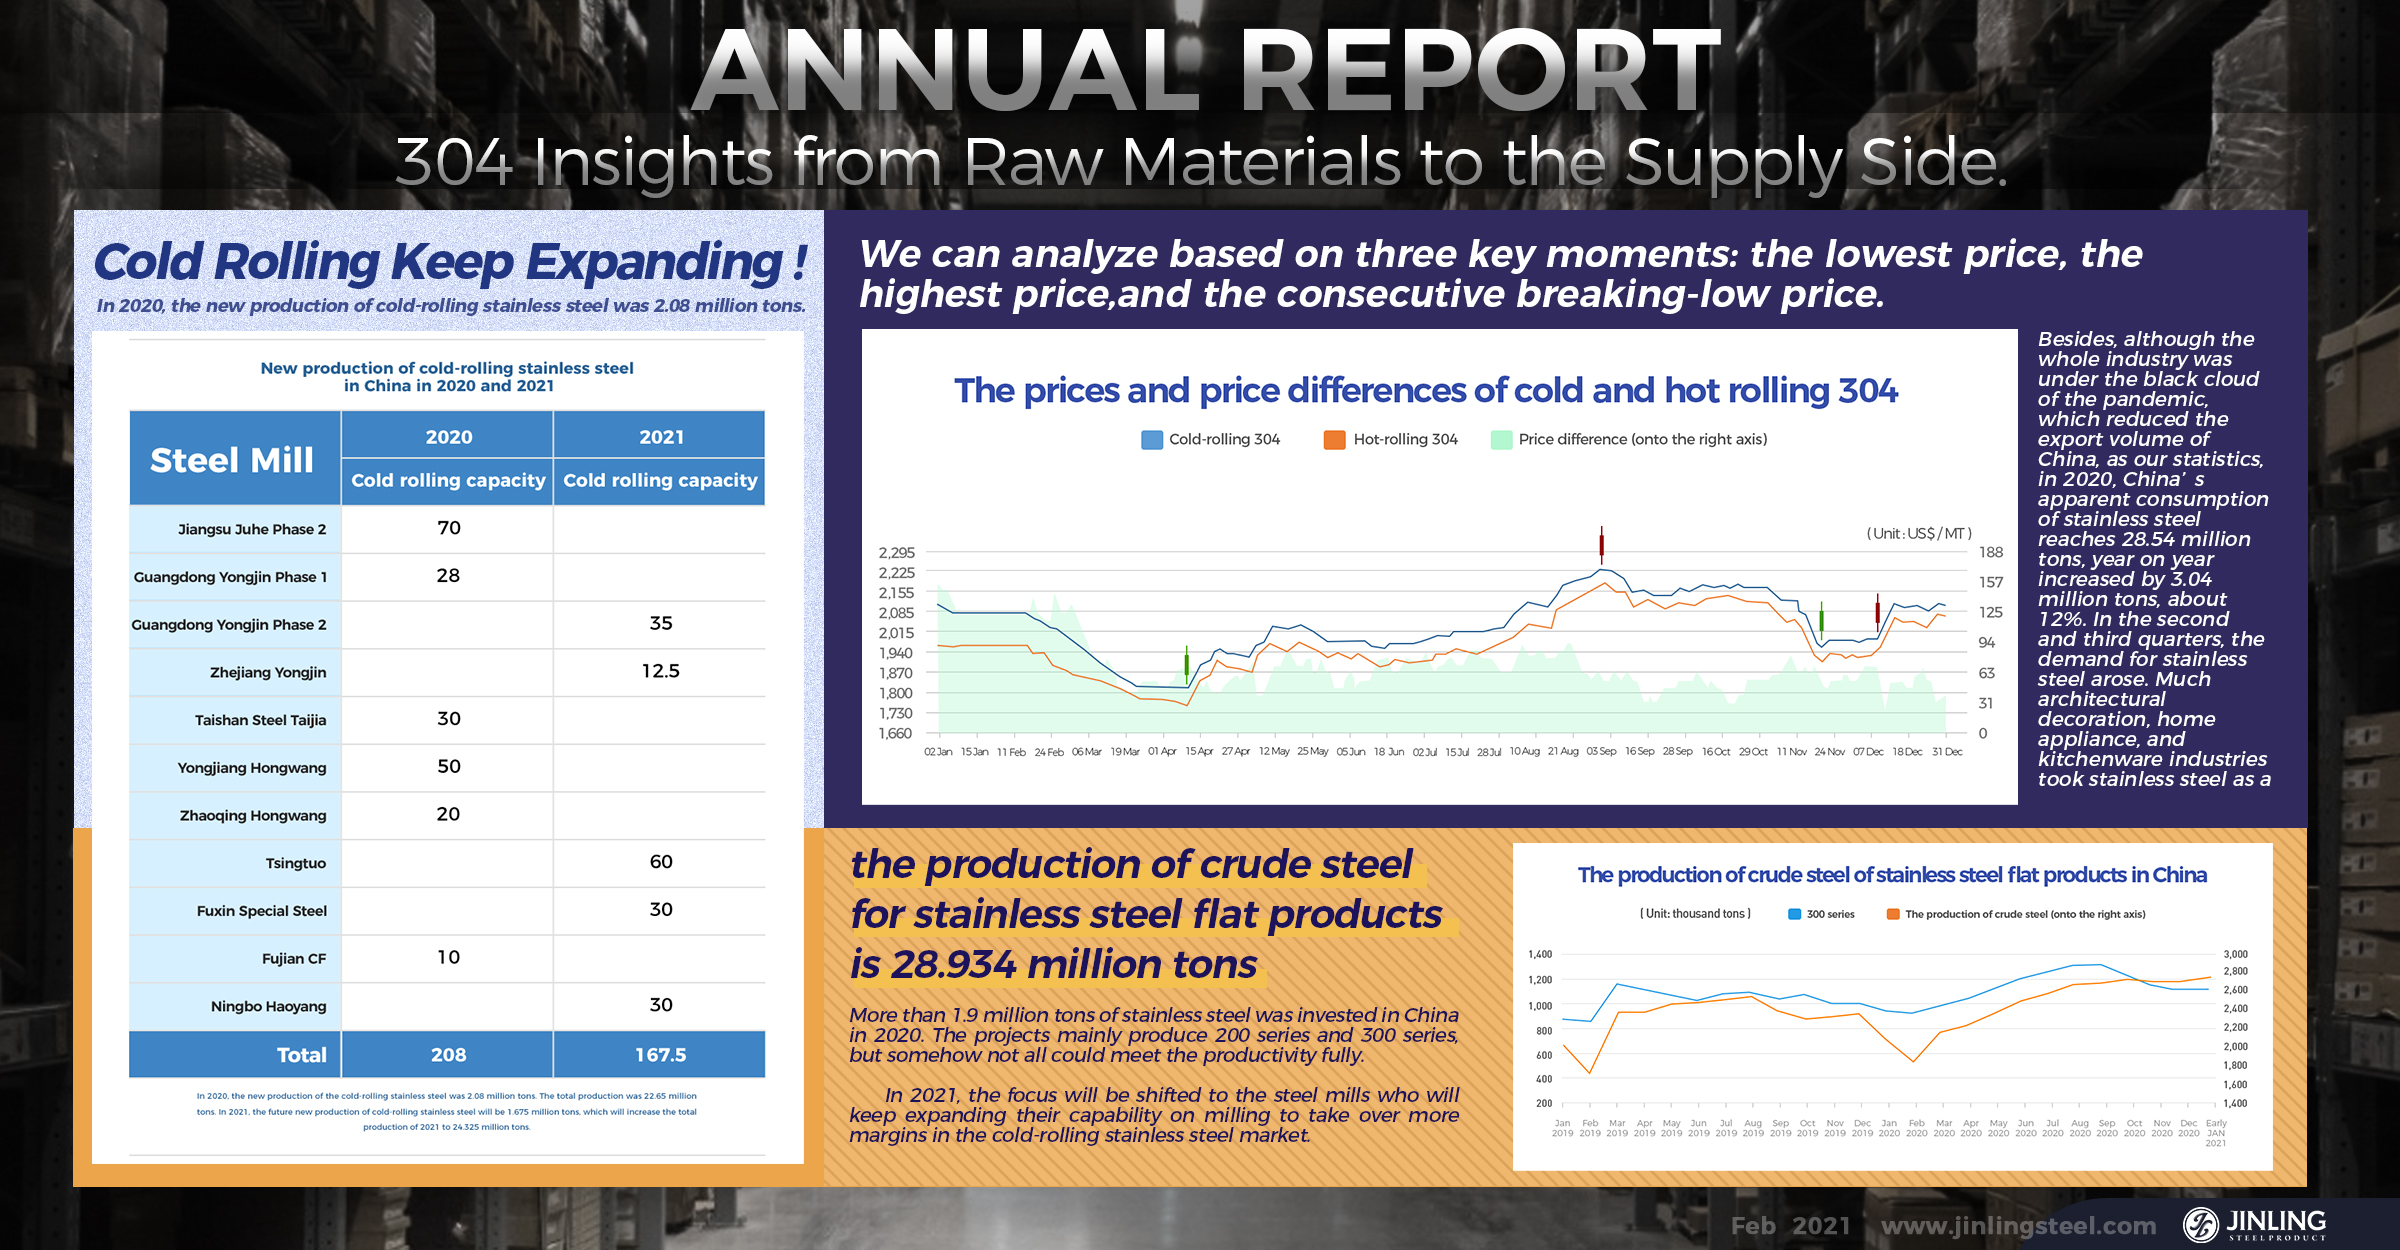 Annual Report: 304 Insights from Raw Materials to the Supply Side. Stainless Steel Market Summary in China